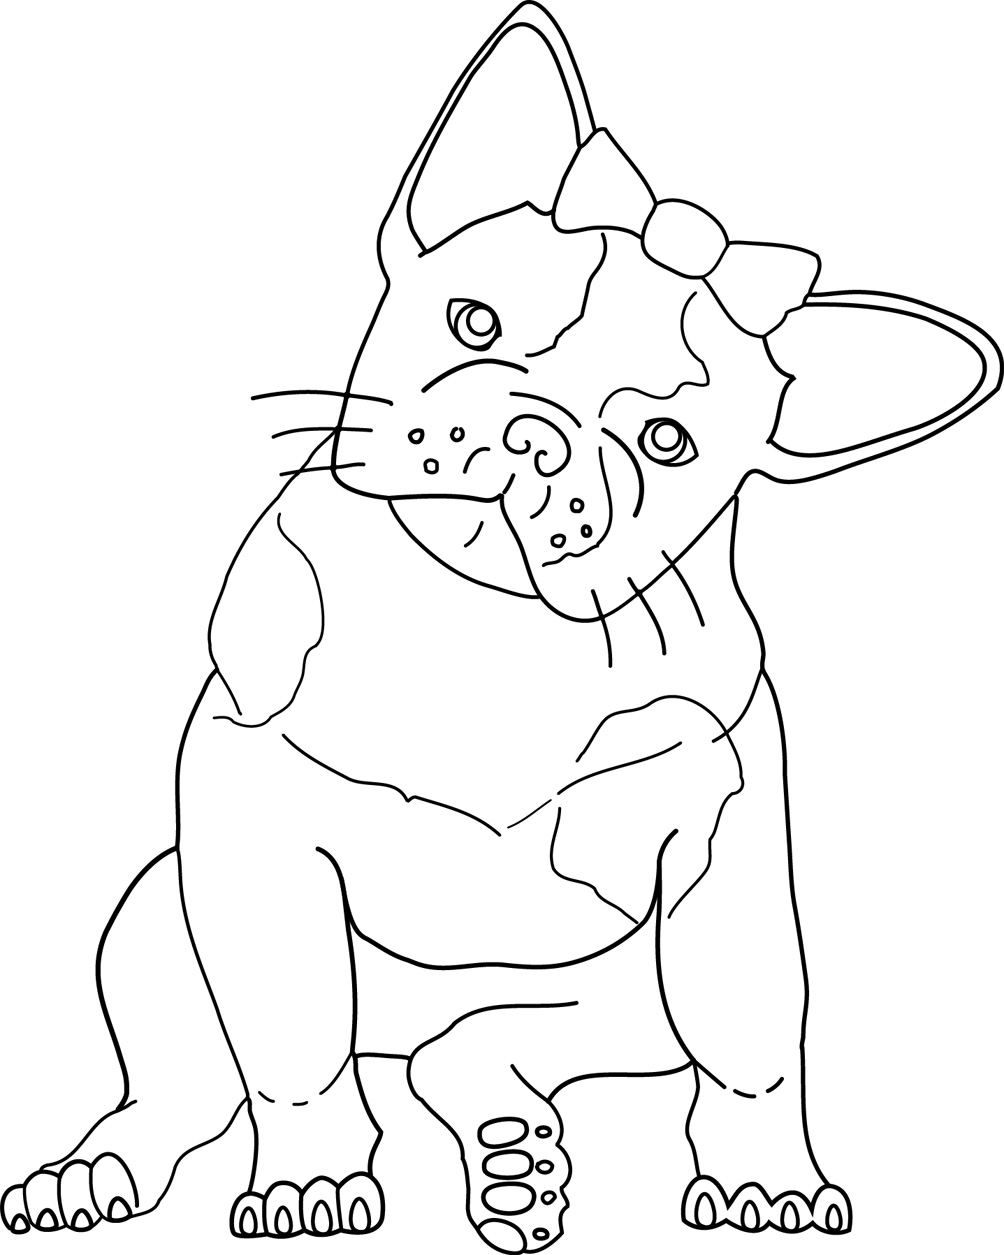 Bull Dog Coloring Page : coloring, French, Bulldog, Coloring, Pages, Masivy, World